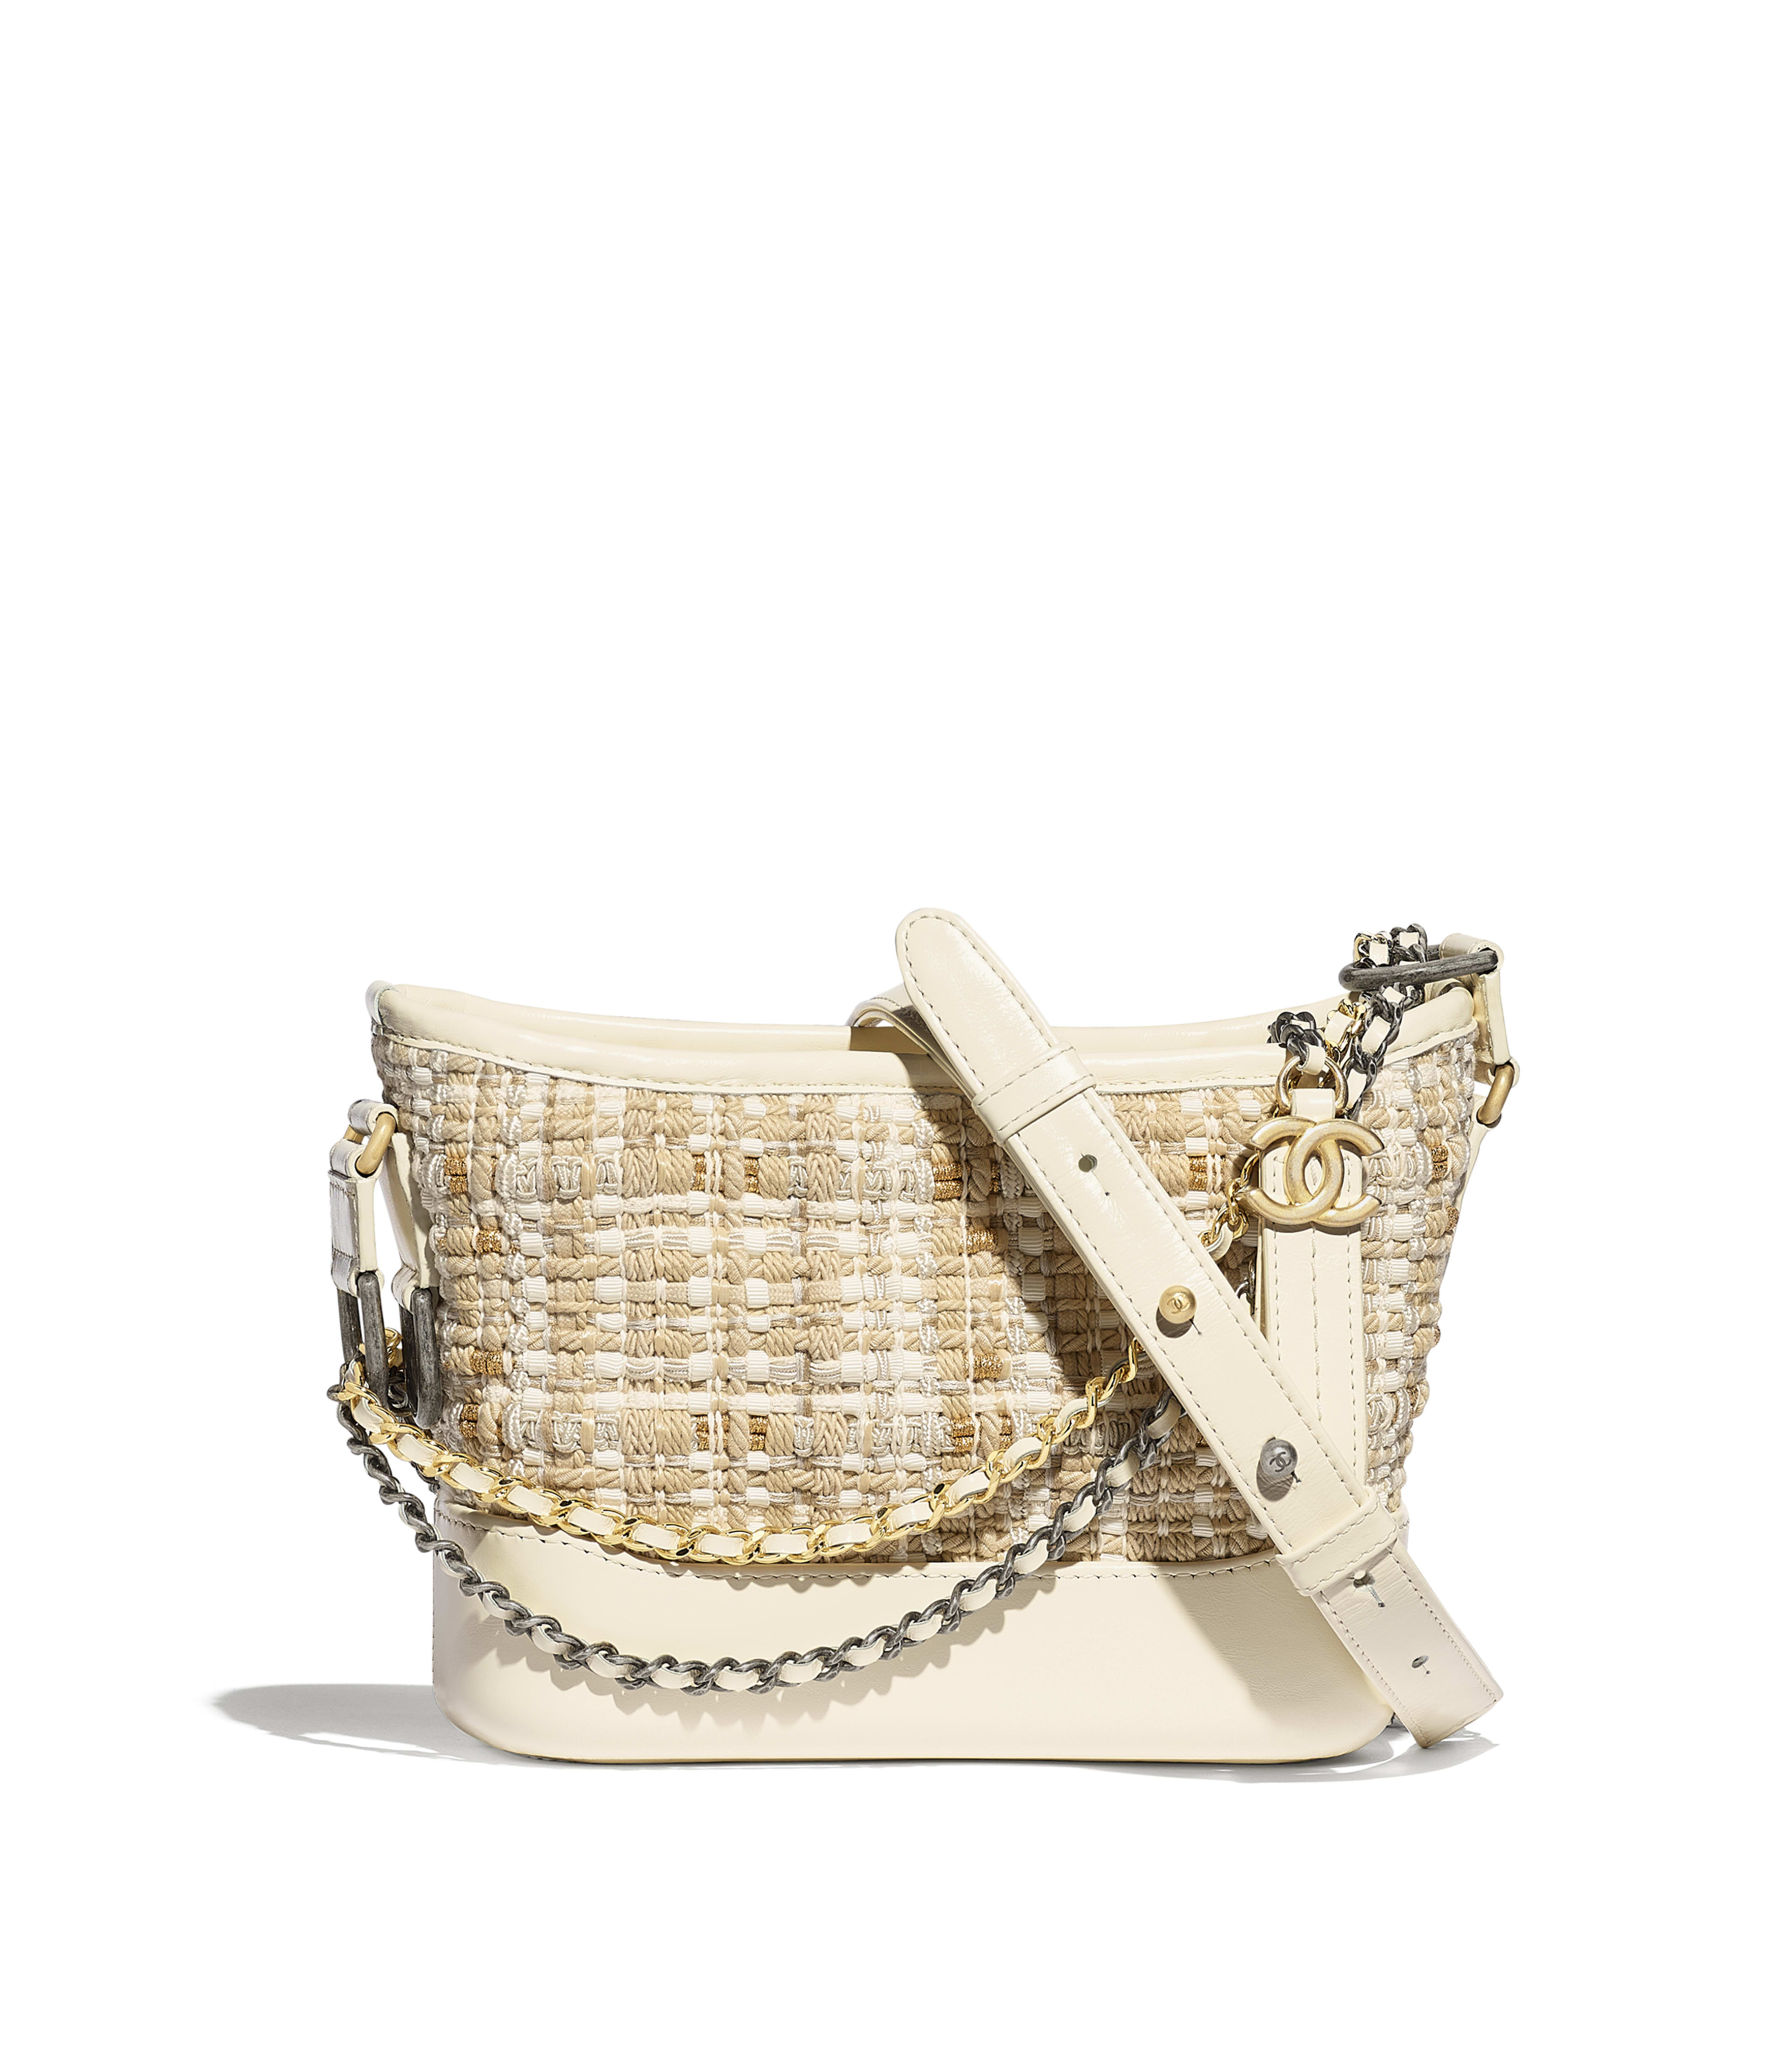 50d4ce05238b CHANEL'S GABRIELLE Small Hobo Bag Tweed, Calfskin, Gold-Tone & Silver-Tone  Metal, Beige & Ivory Ref. A91810B00026N0813